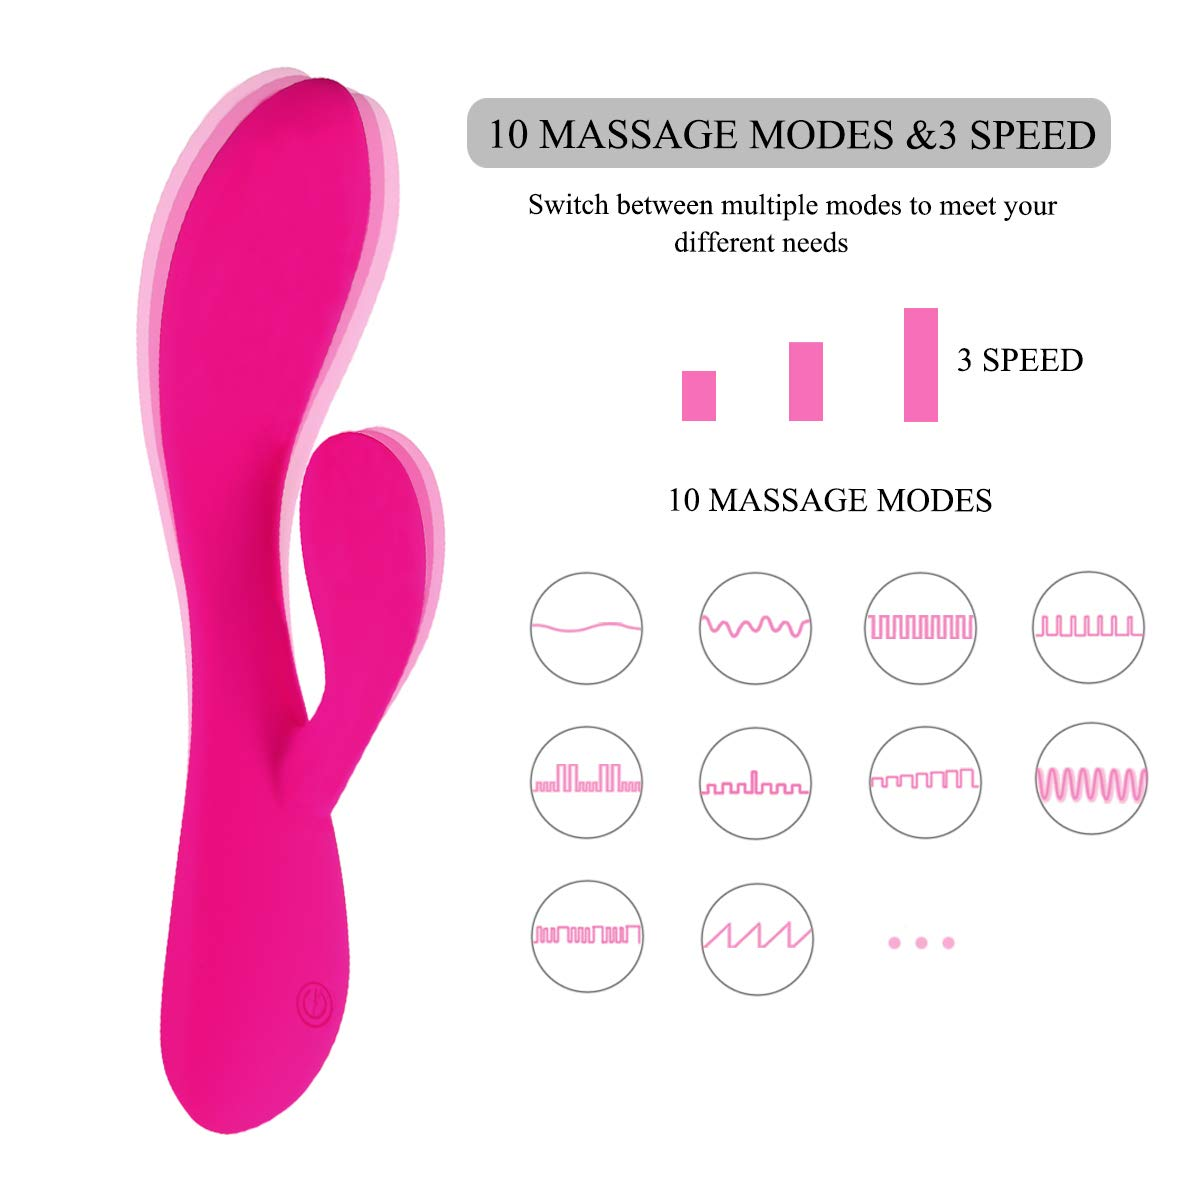 Portable Hand-Held Personal Massager Skin-Friendly 10 Kinds of Silent Massage Modes Which Can Relieve Muscle Soreness and Exercise Recovery Pink